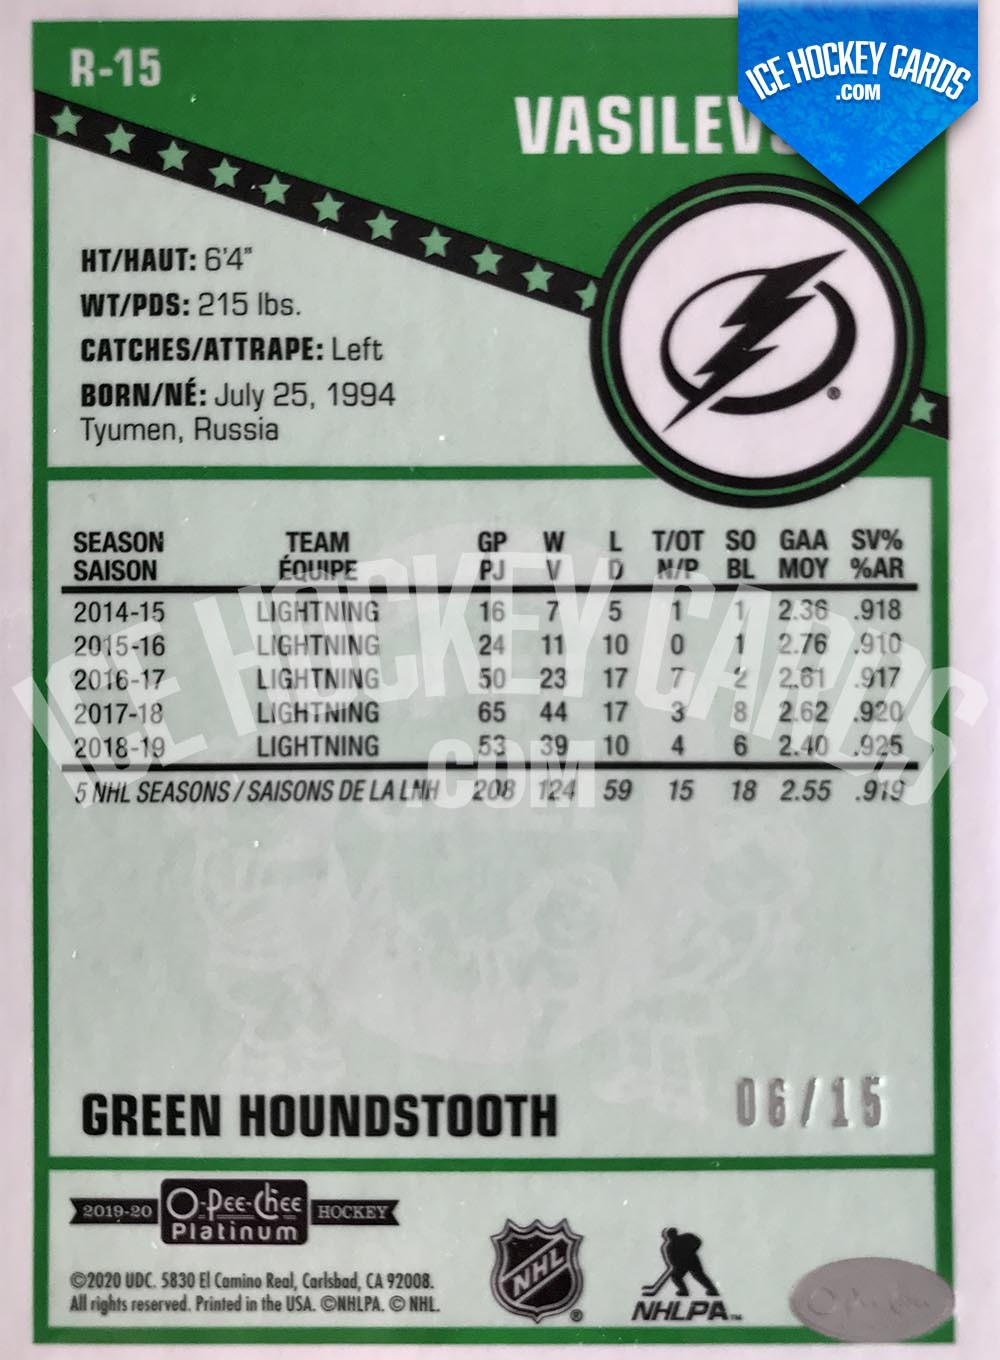 Upper Deck - OPC Platinum 2019-20 - Andrei Vasilevskiy Green Houndstooth Retro Card # to 15 RARE back